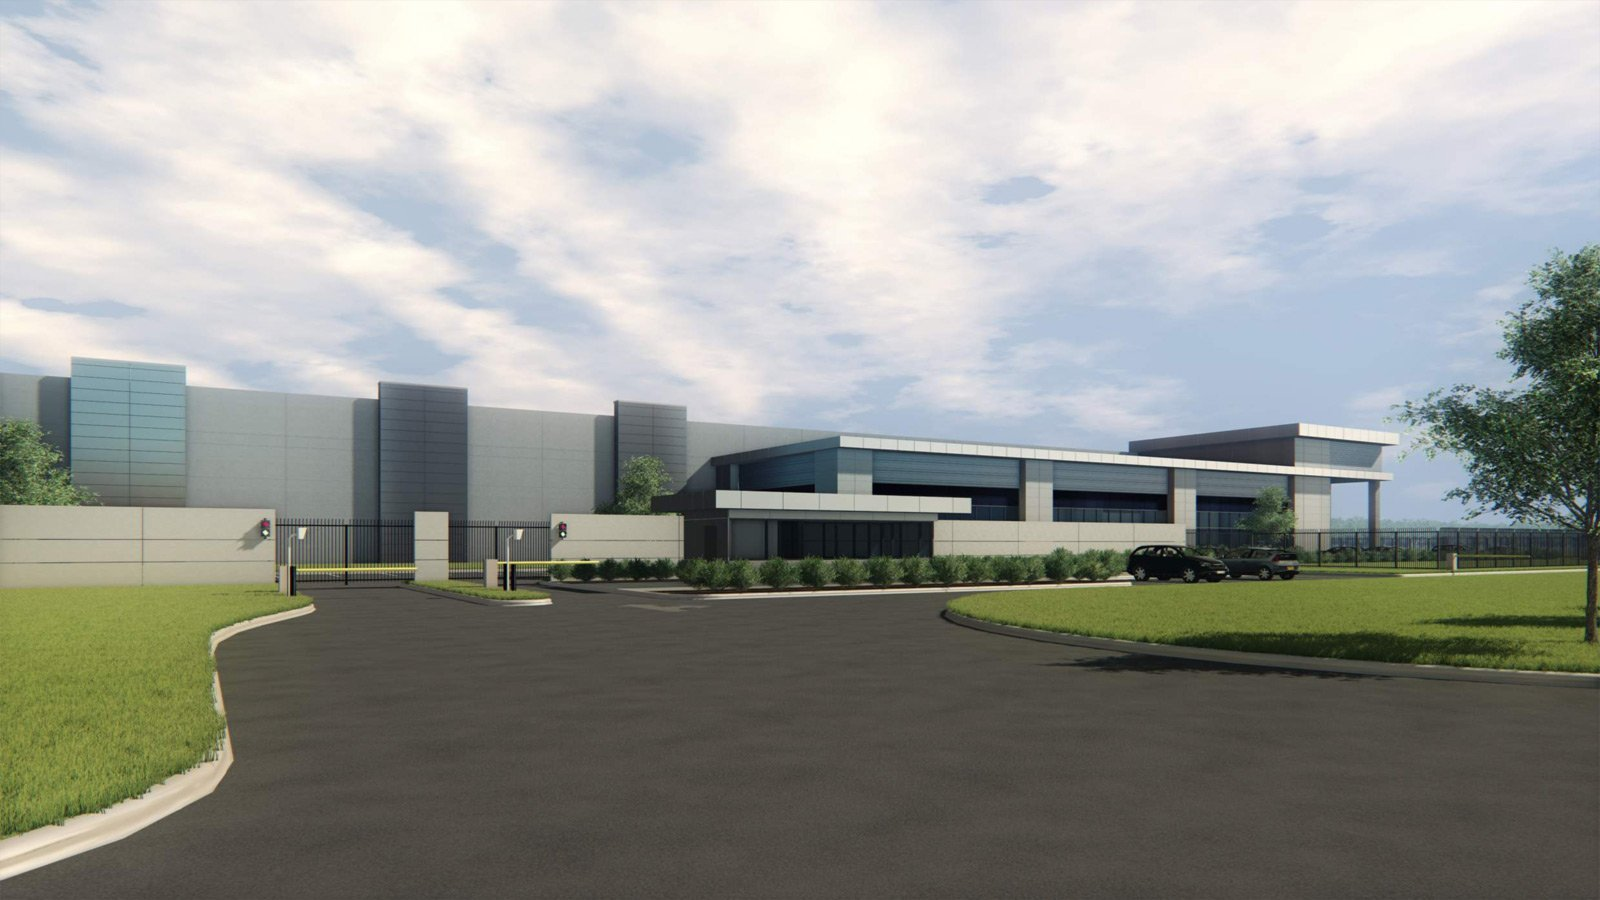 Stream Data Centers: Facilities that Match Emerging Trends in Today's Data Center Market